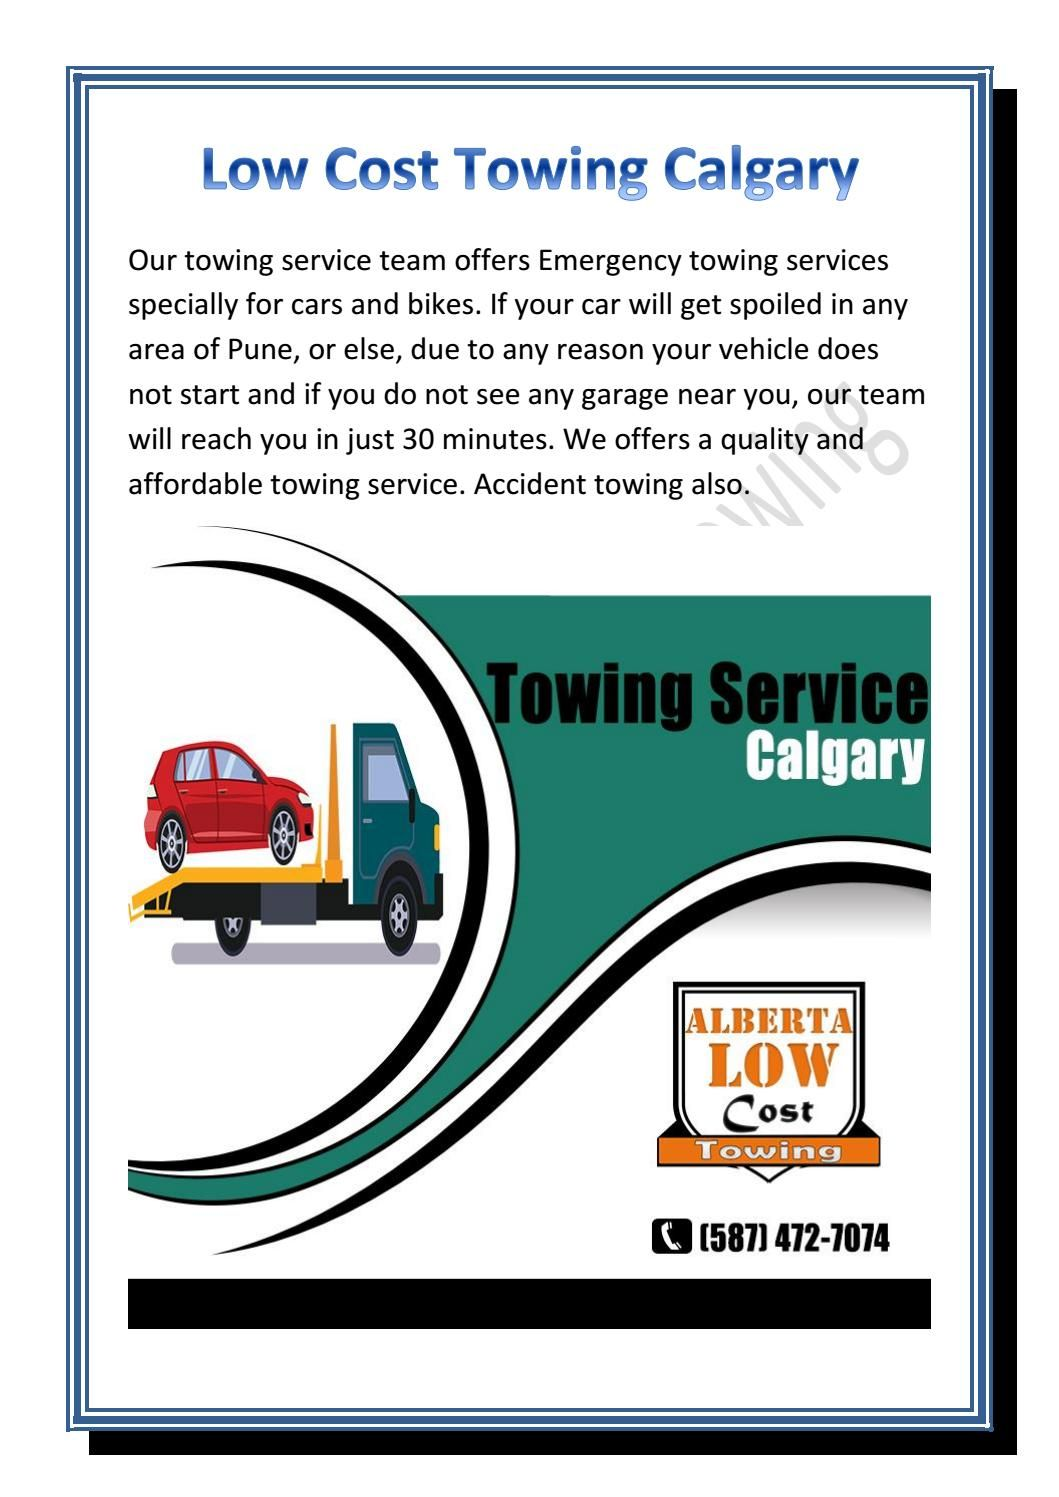 Towing Service Cost >> Low Cost Towing Calgary Low Cost Towing Calgary Calgary